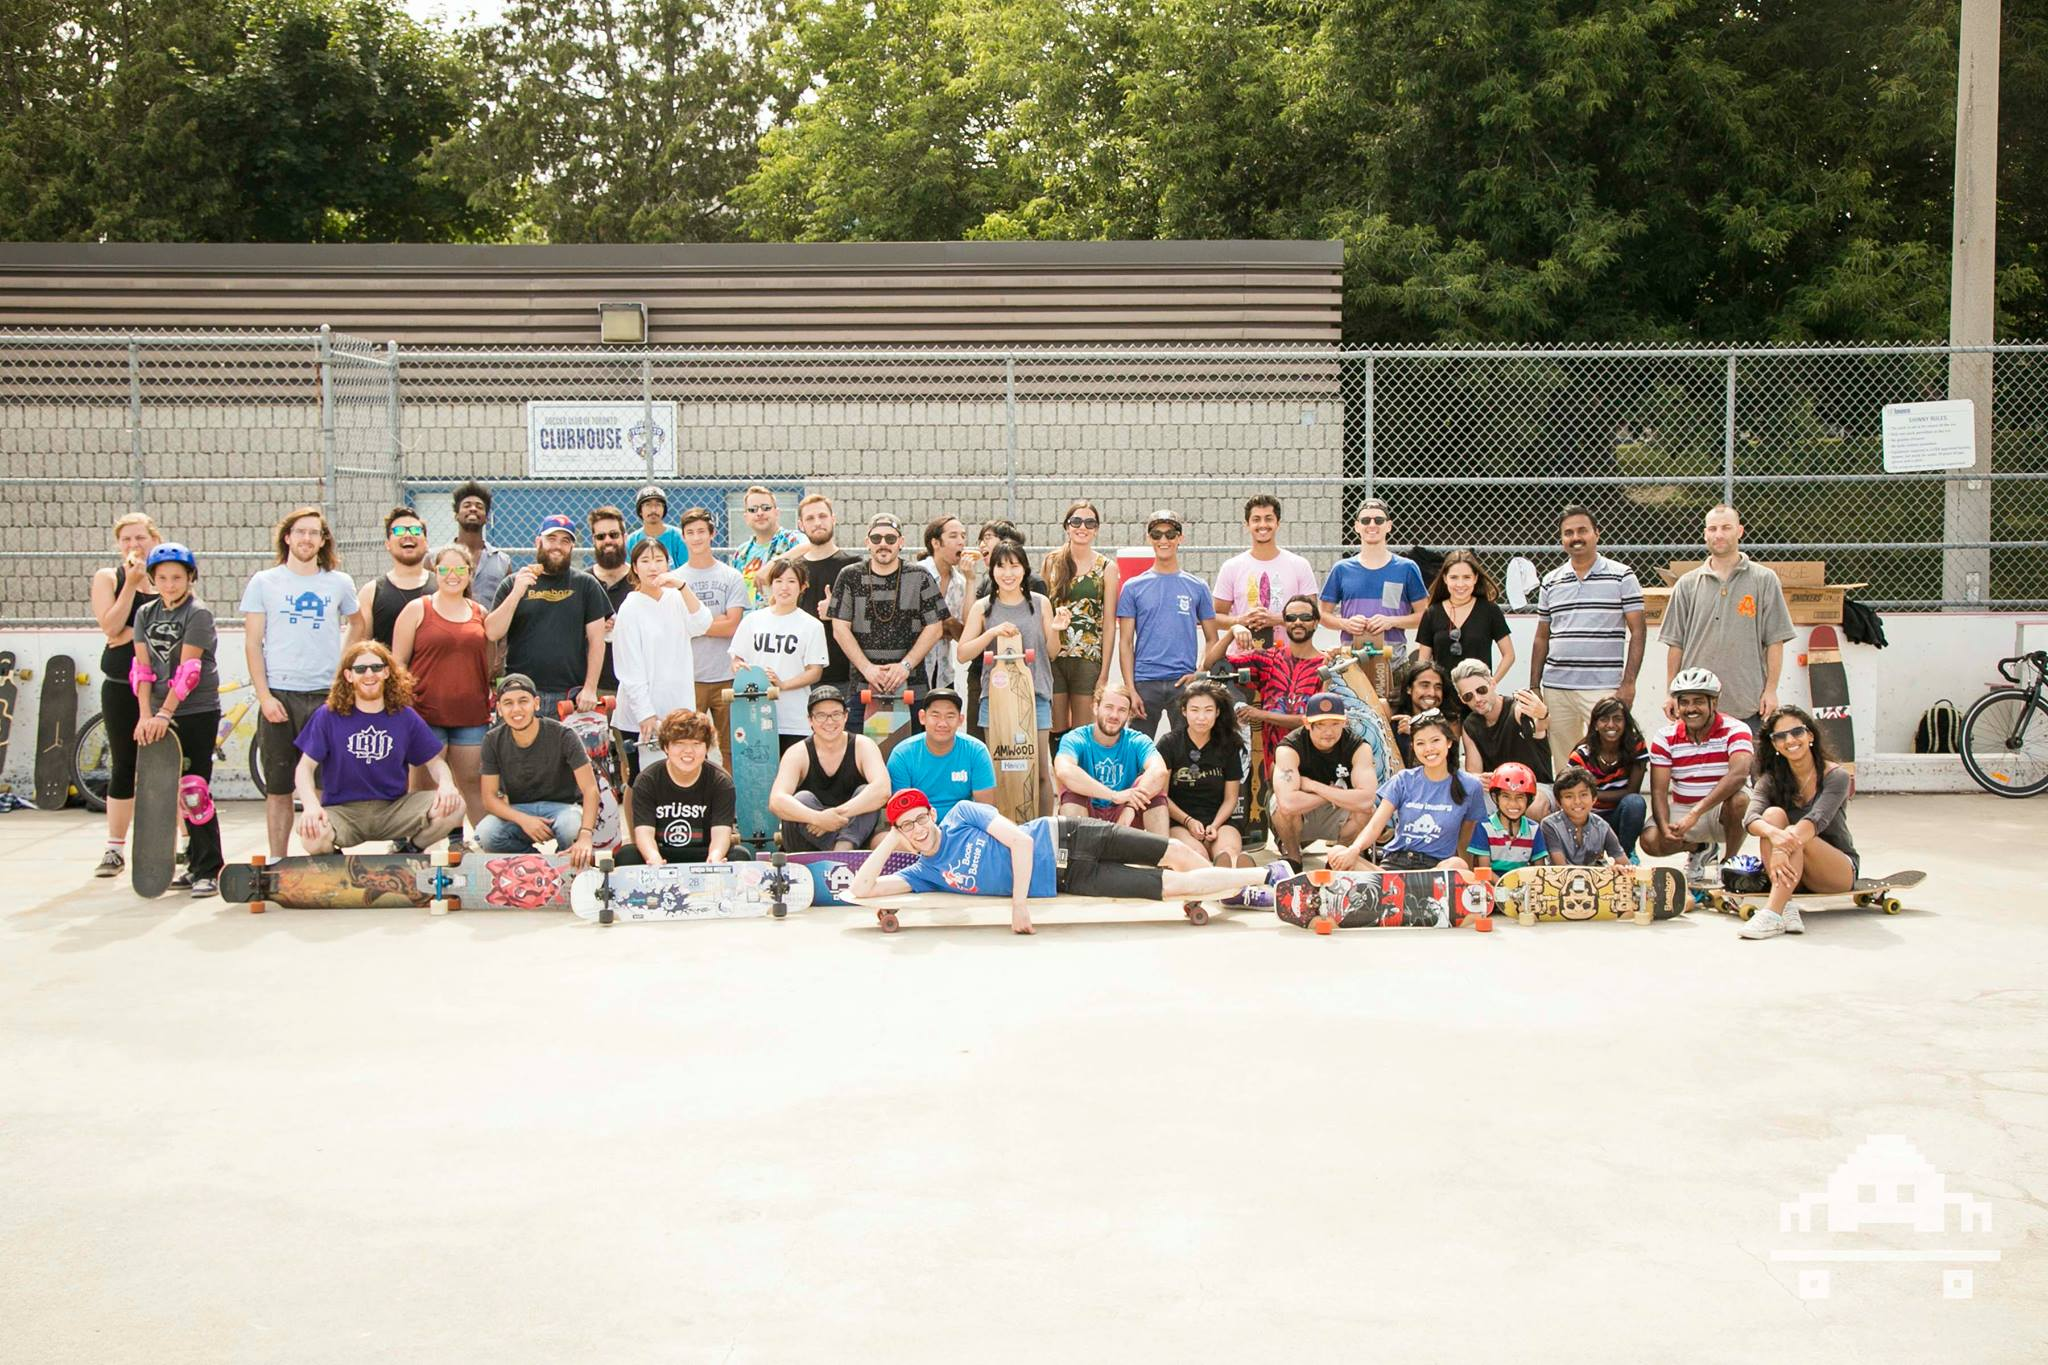 The NOOBeginnings family! Smiles from ear to ear on every person!! Photo - Jon Nuss